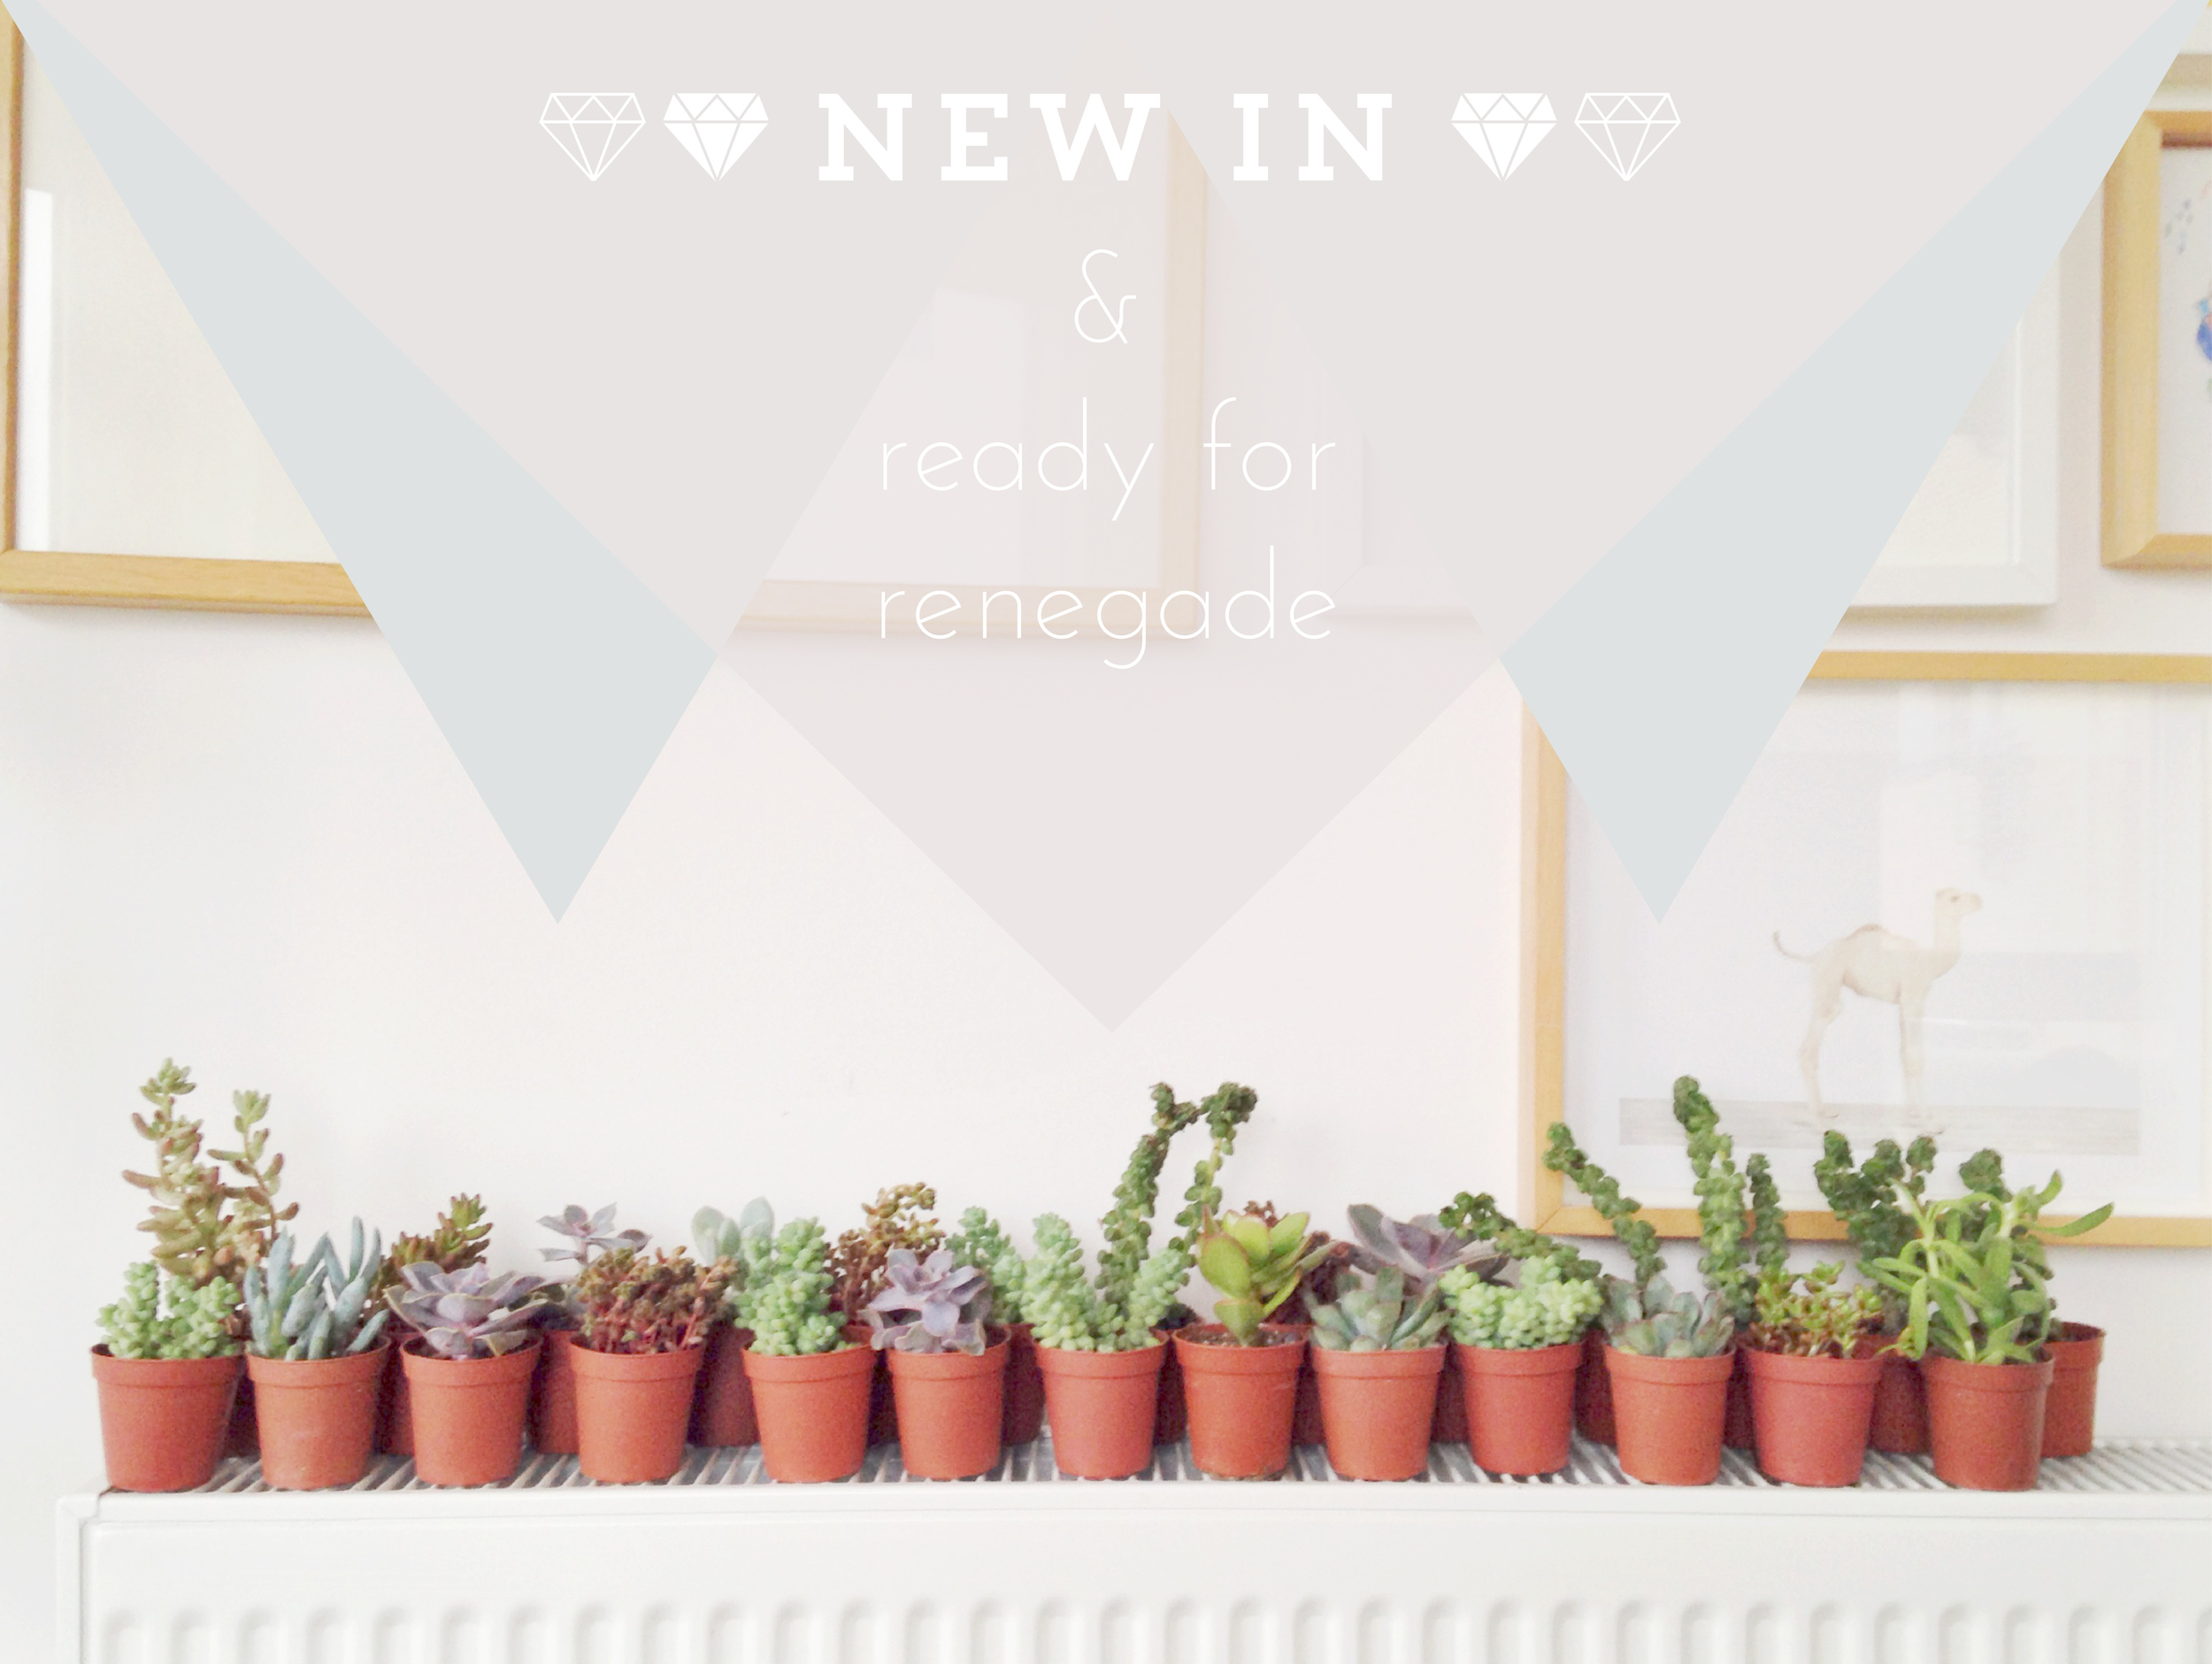 newsucculents-01.jpg